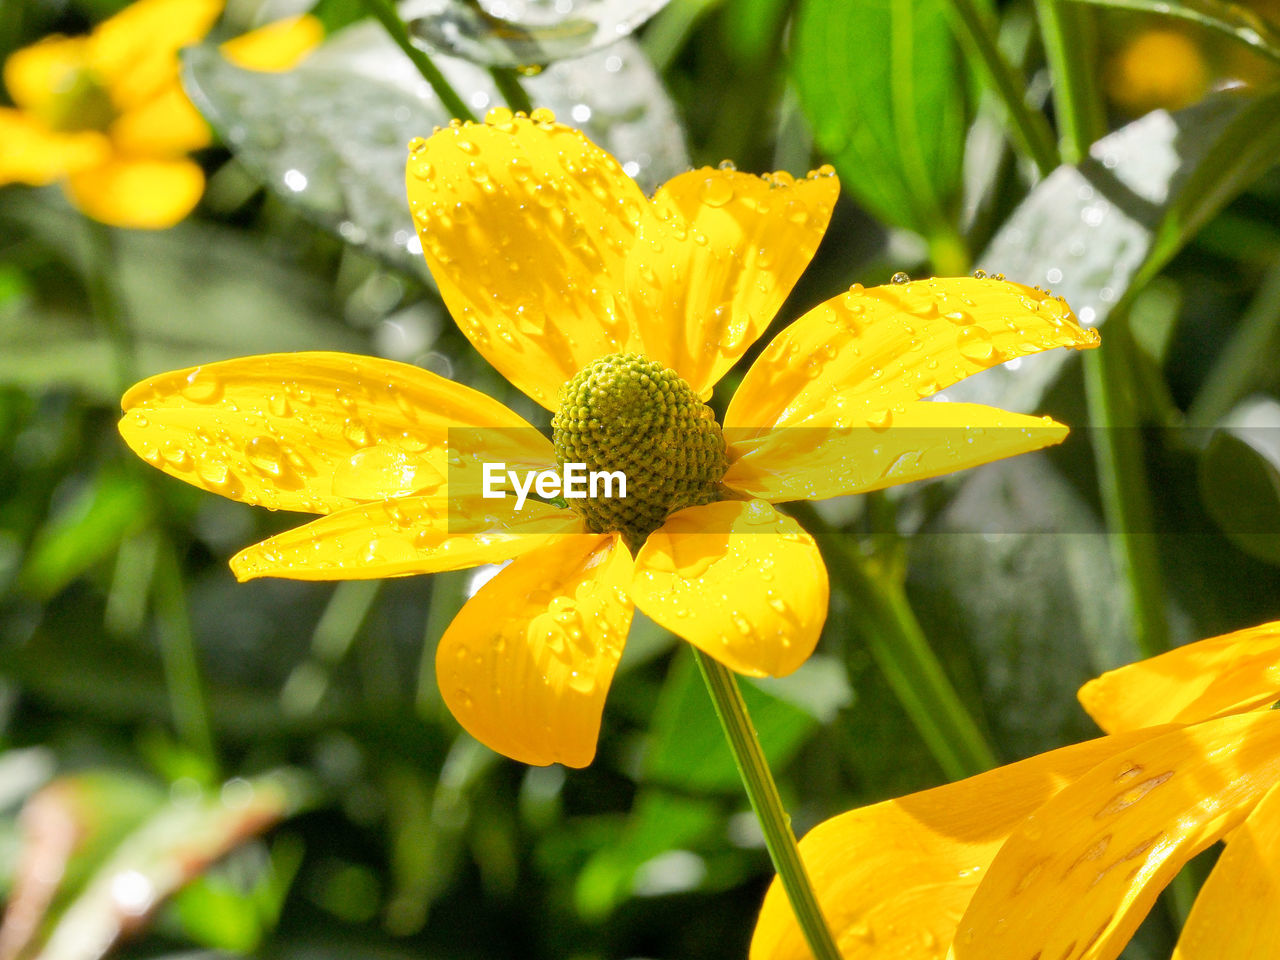 flower, beauty in nature, growth, petal, nature, freshness, fragility, yellow, drop, plant, wet, flower head, blooming, focus on foreground, outdoors, water, green color, day, close-up, no people